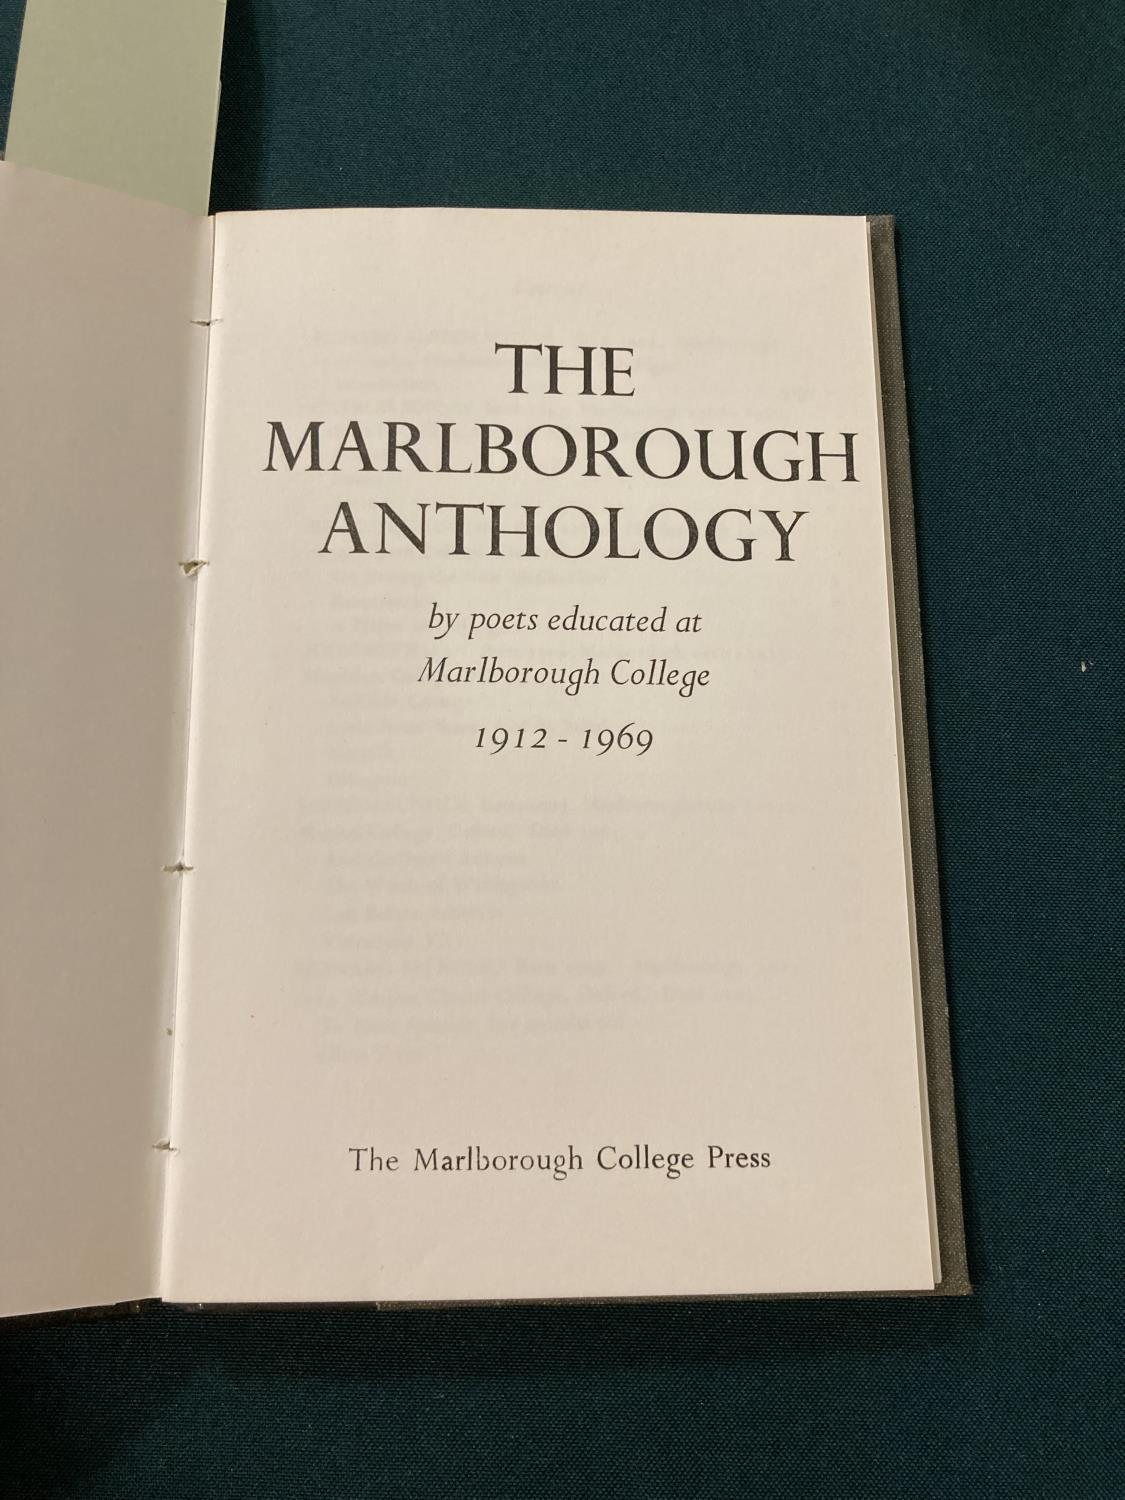 Sorley, Charles Hamilton. Marlborough and other poems, first edition, photographic portrait - Image 2 of 9